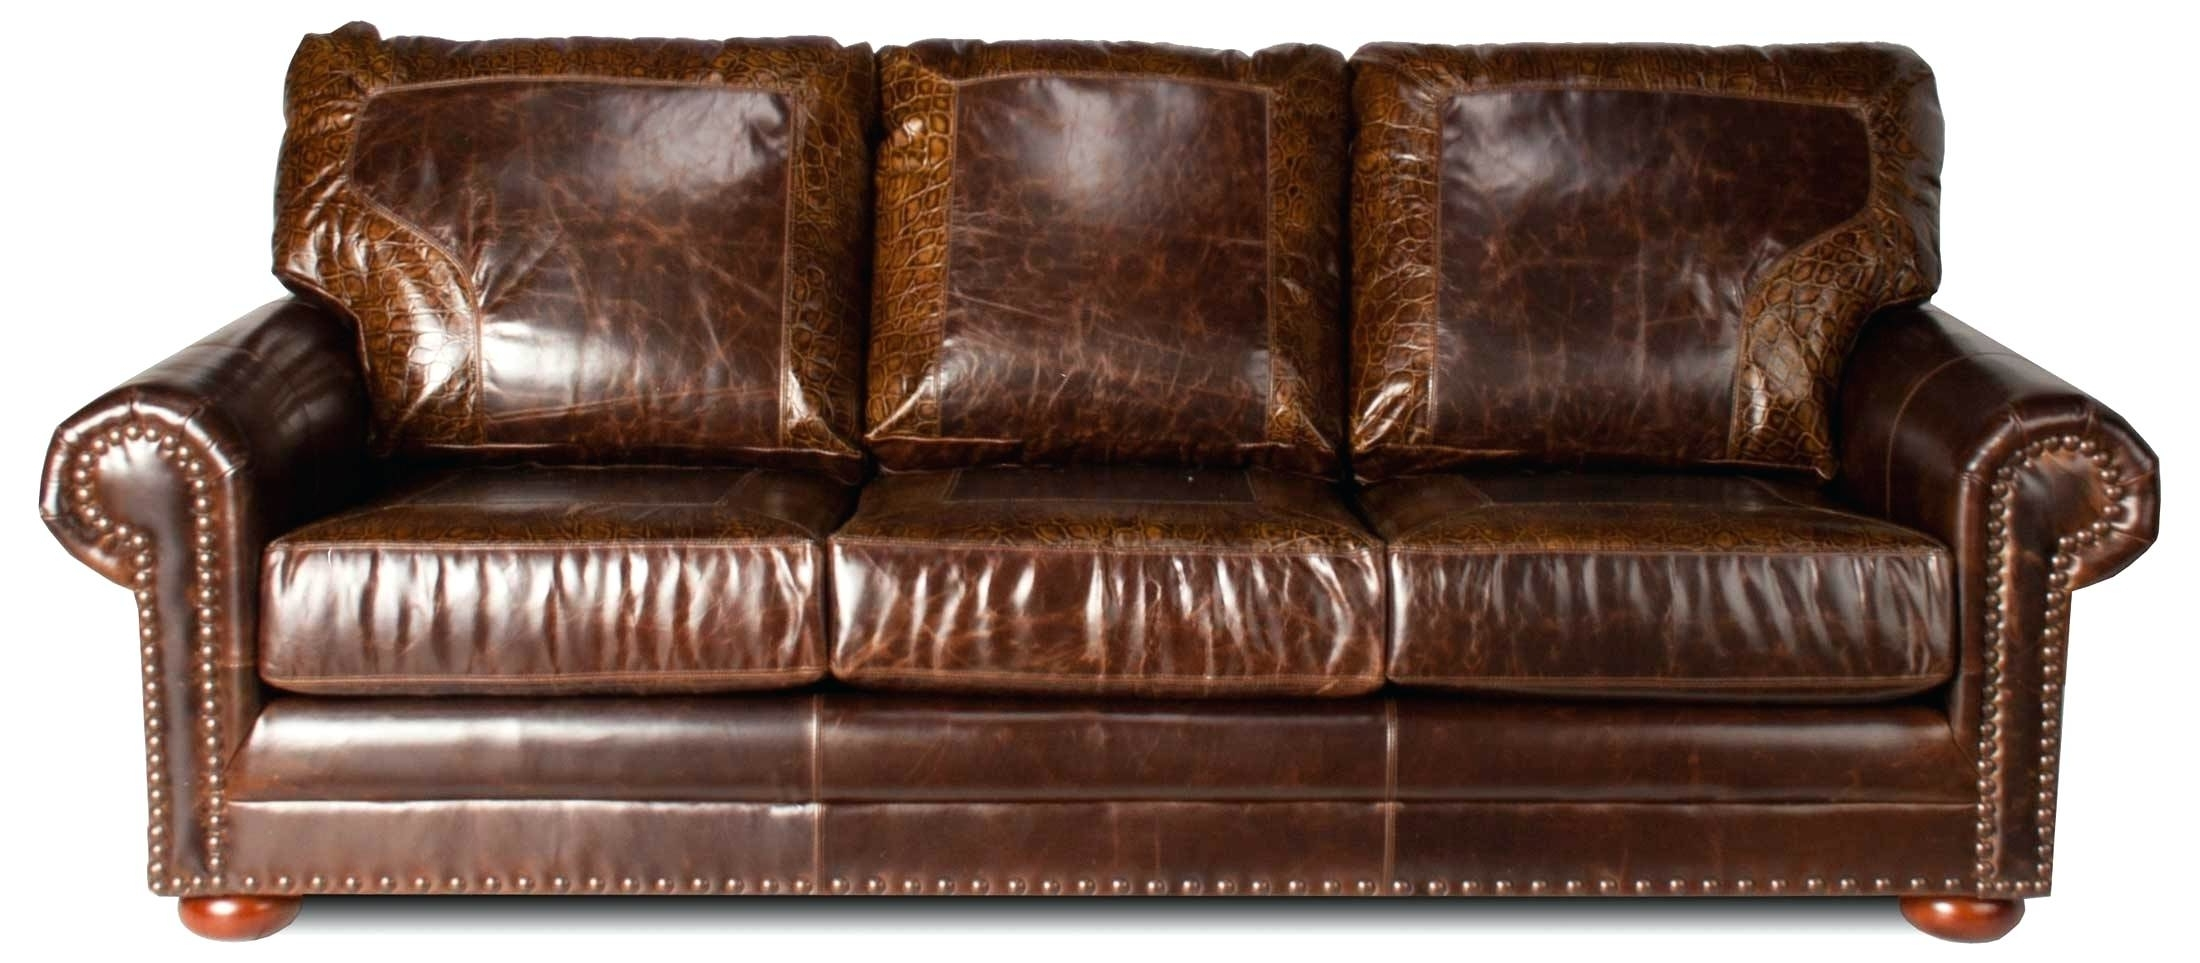 Custom Leather Sofas Toronto Sofa North Carolina Sectional San Throughout Most Up To Date Made In